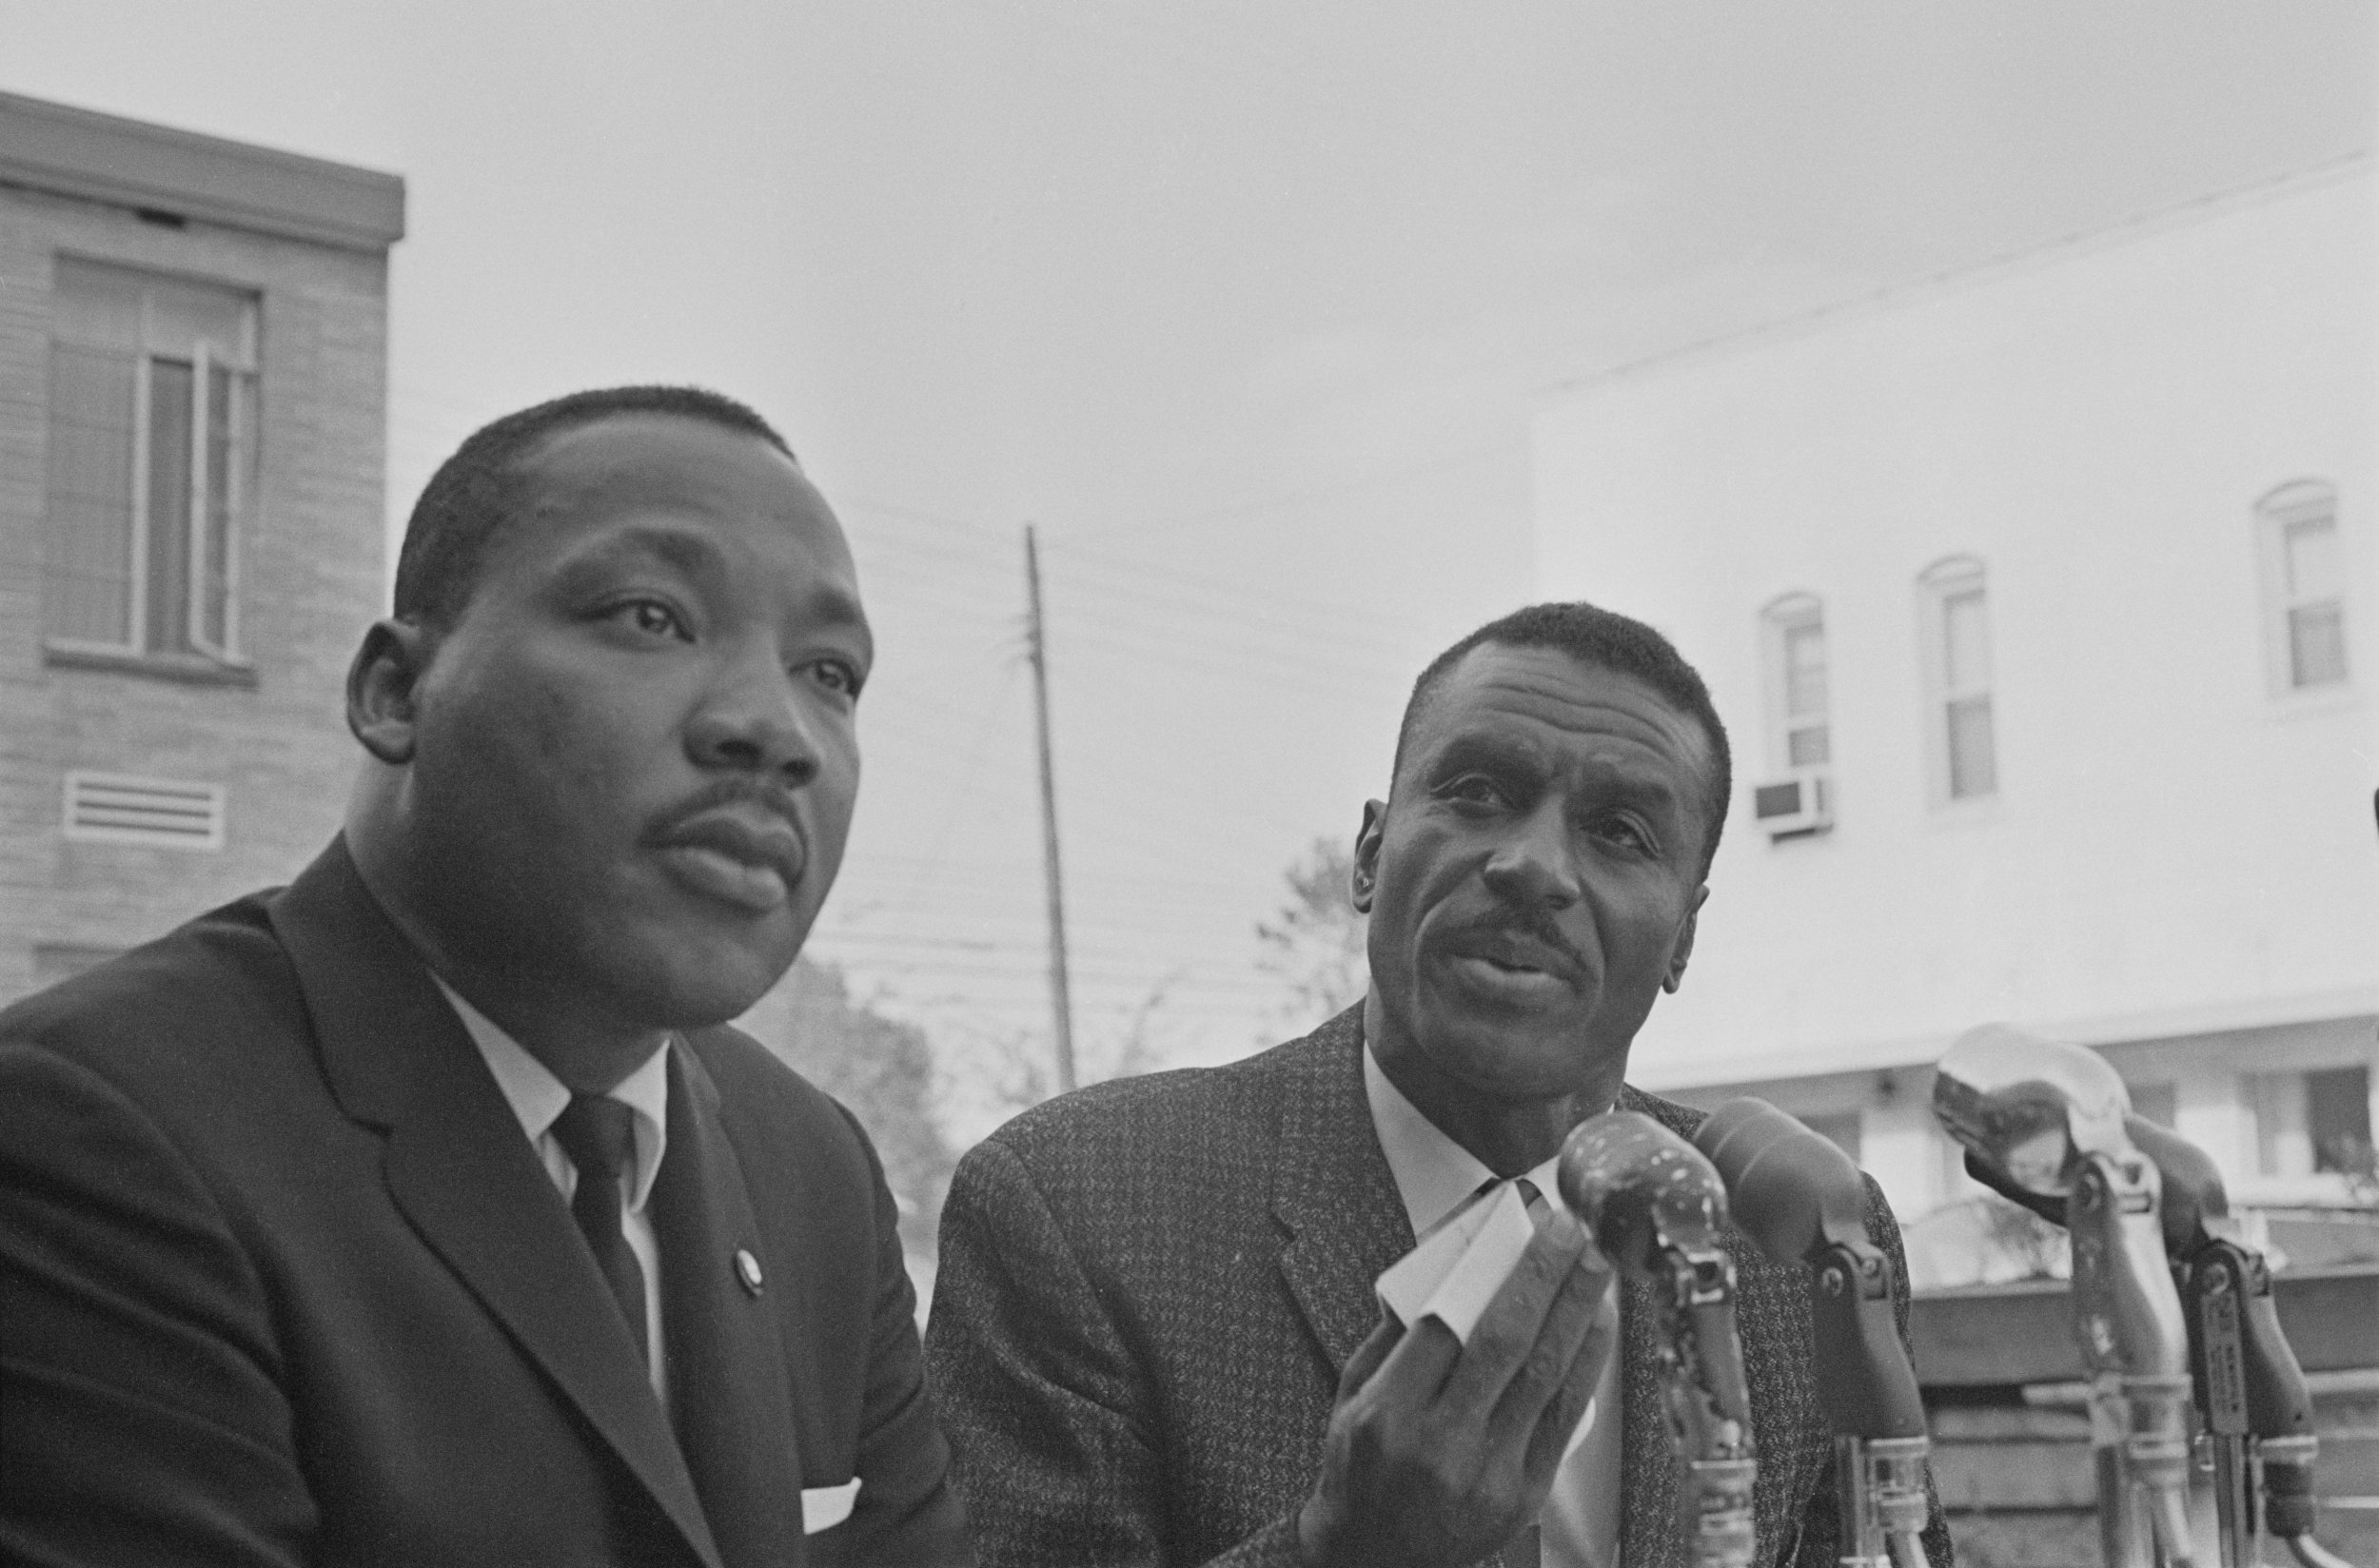 martin luther king jr day facts